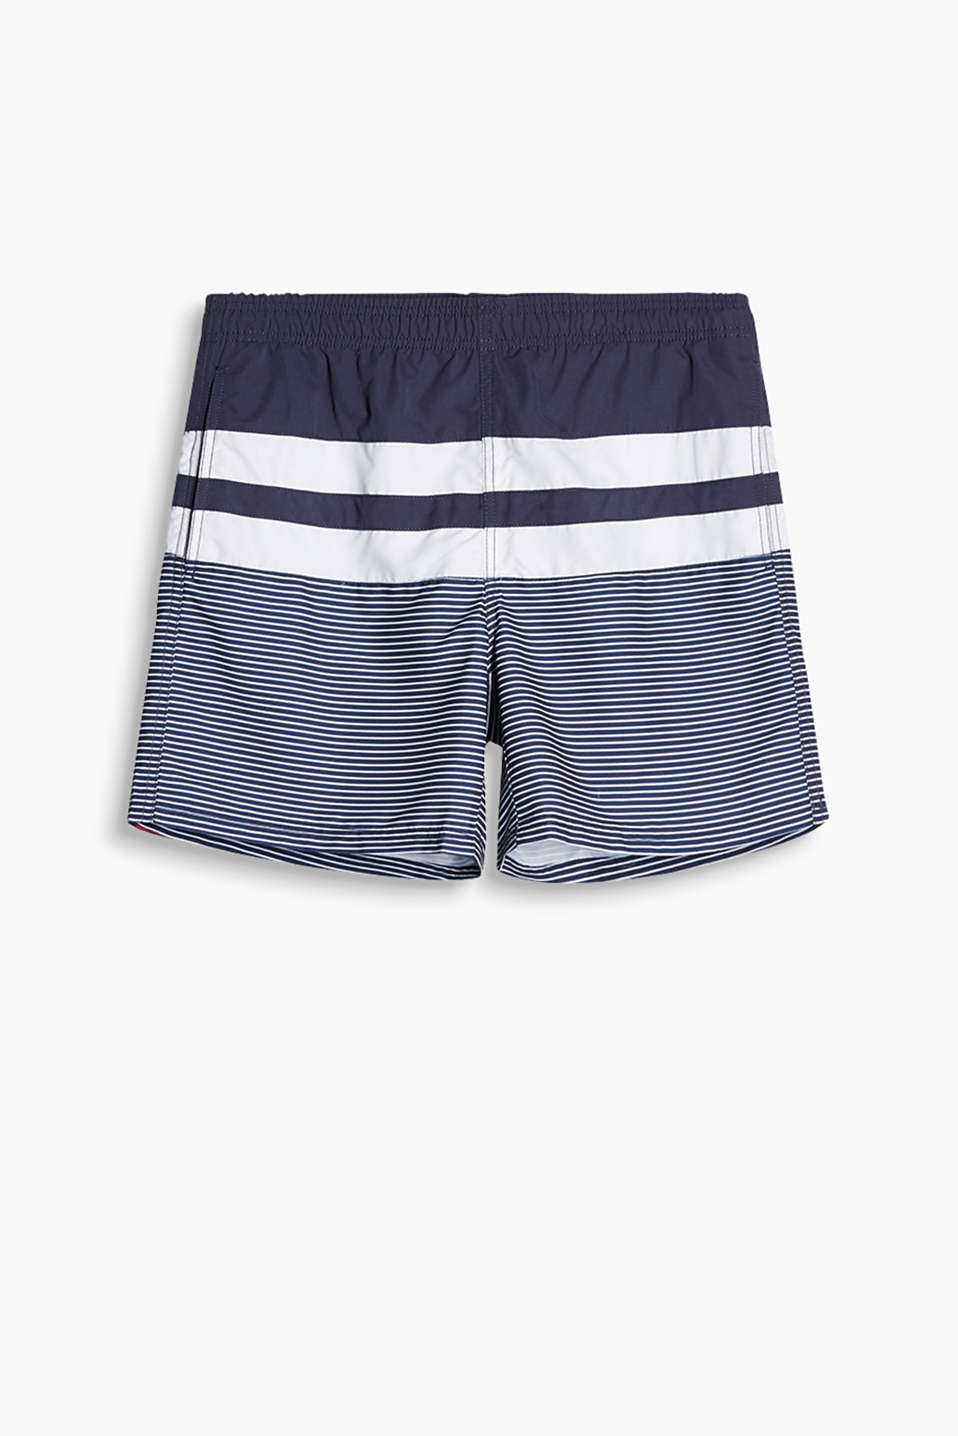 Collection: FLORIDA BAY - swim shorts with stripes and block stripes, slit pockets and an elasticated waistband